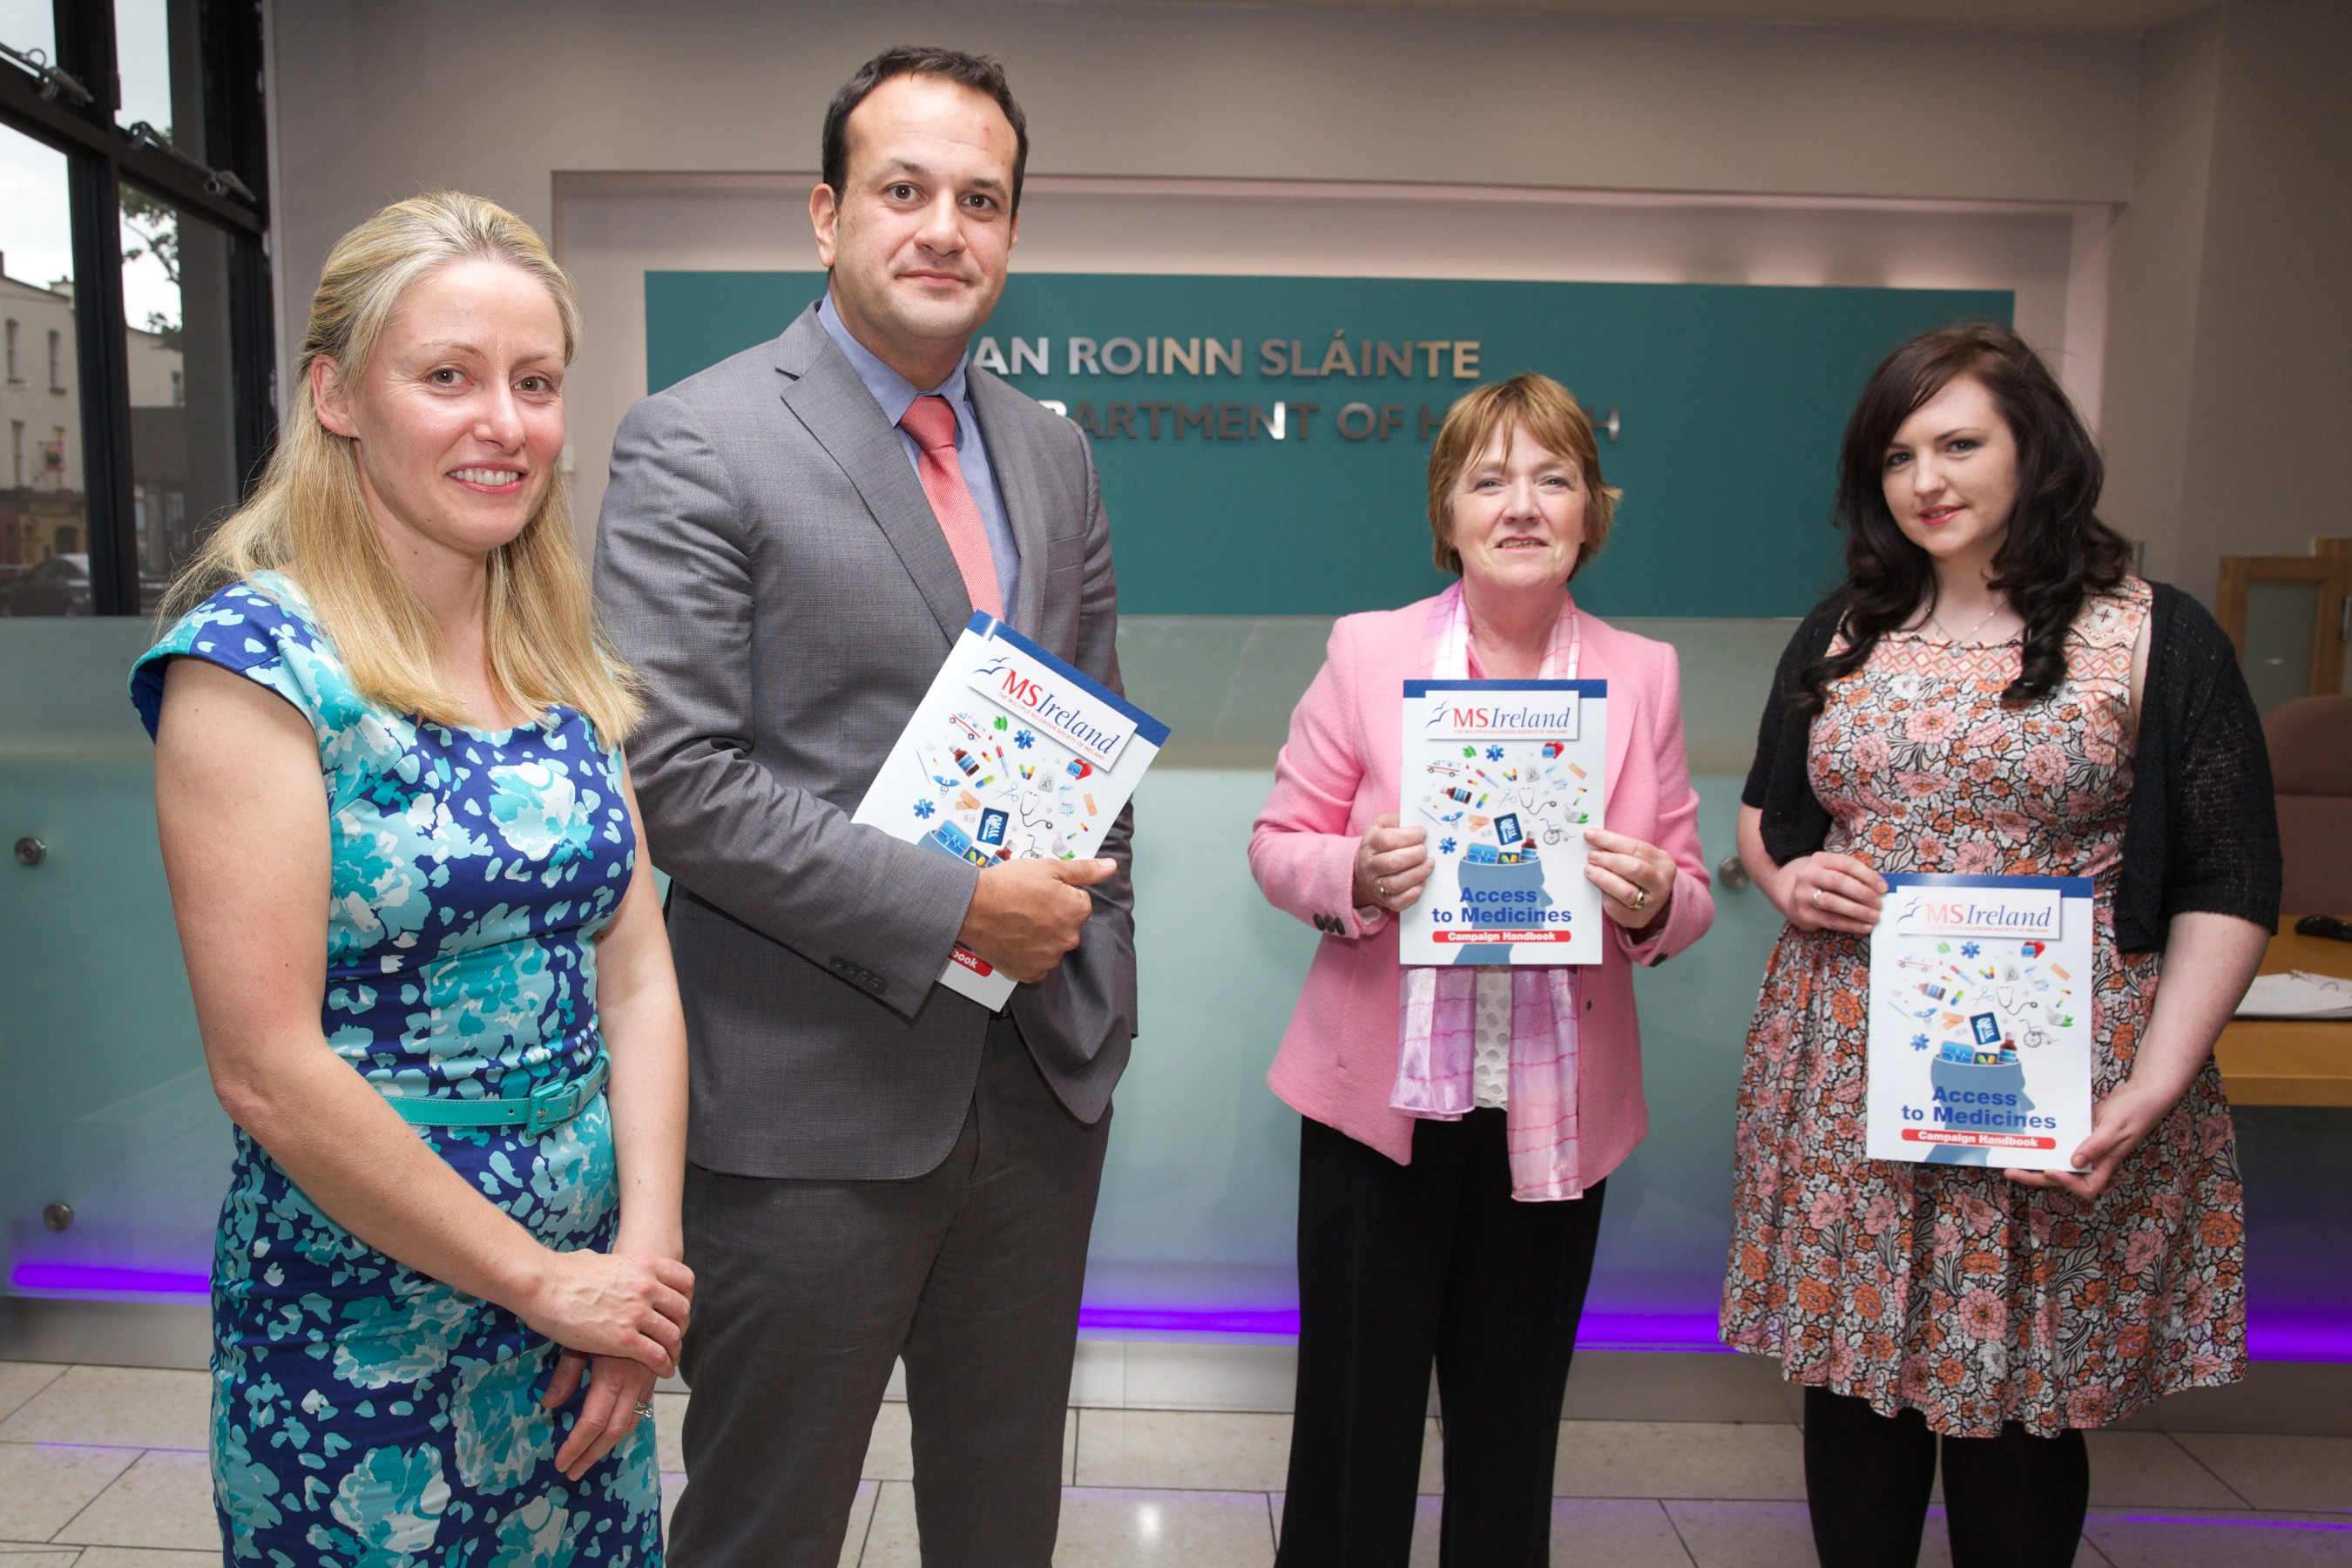 19/8/15. Photographed at the launch of the Access to Medicines campaign handbook for people with multiple sclerosis, are Ava Battles, Chief Executive, MS Ireland; Minister for Health Leo Varadkar; and people living with MS, Rosaleen Rafter and Aoife Kirwan. Photograph by Sean Brosnan